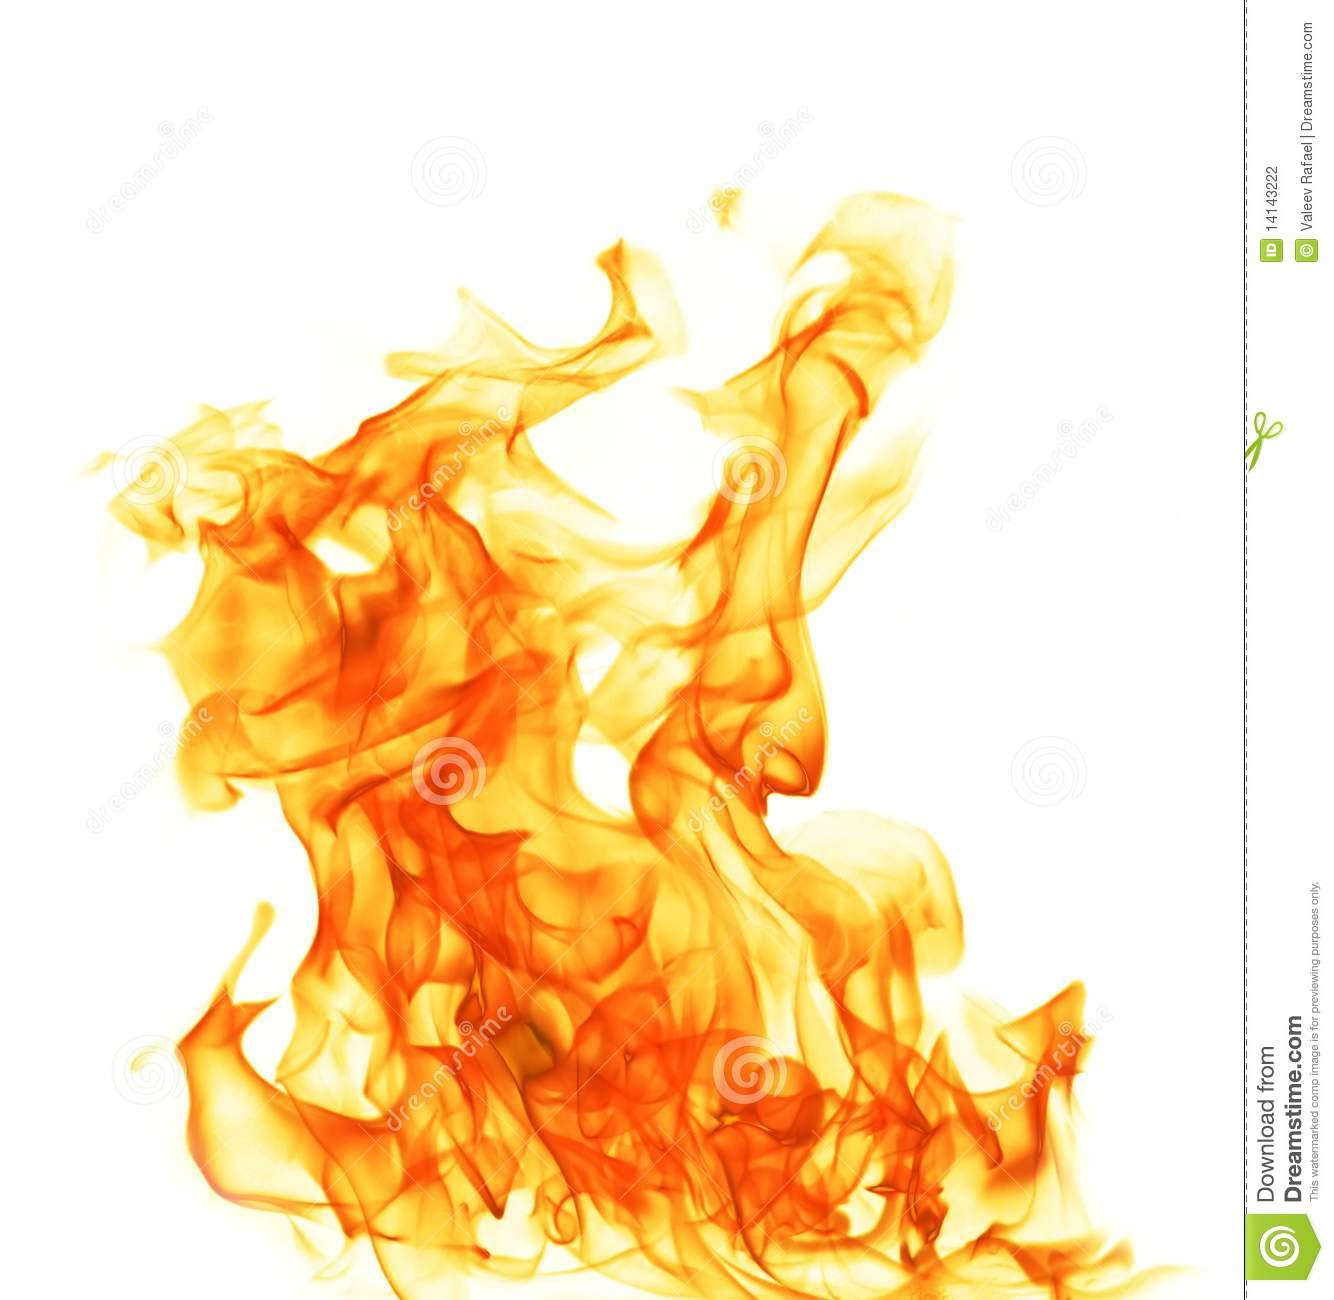 http://thumbs.dreamstime.com/z/fire-isolated-white-background-14143222.jpg